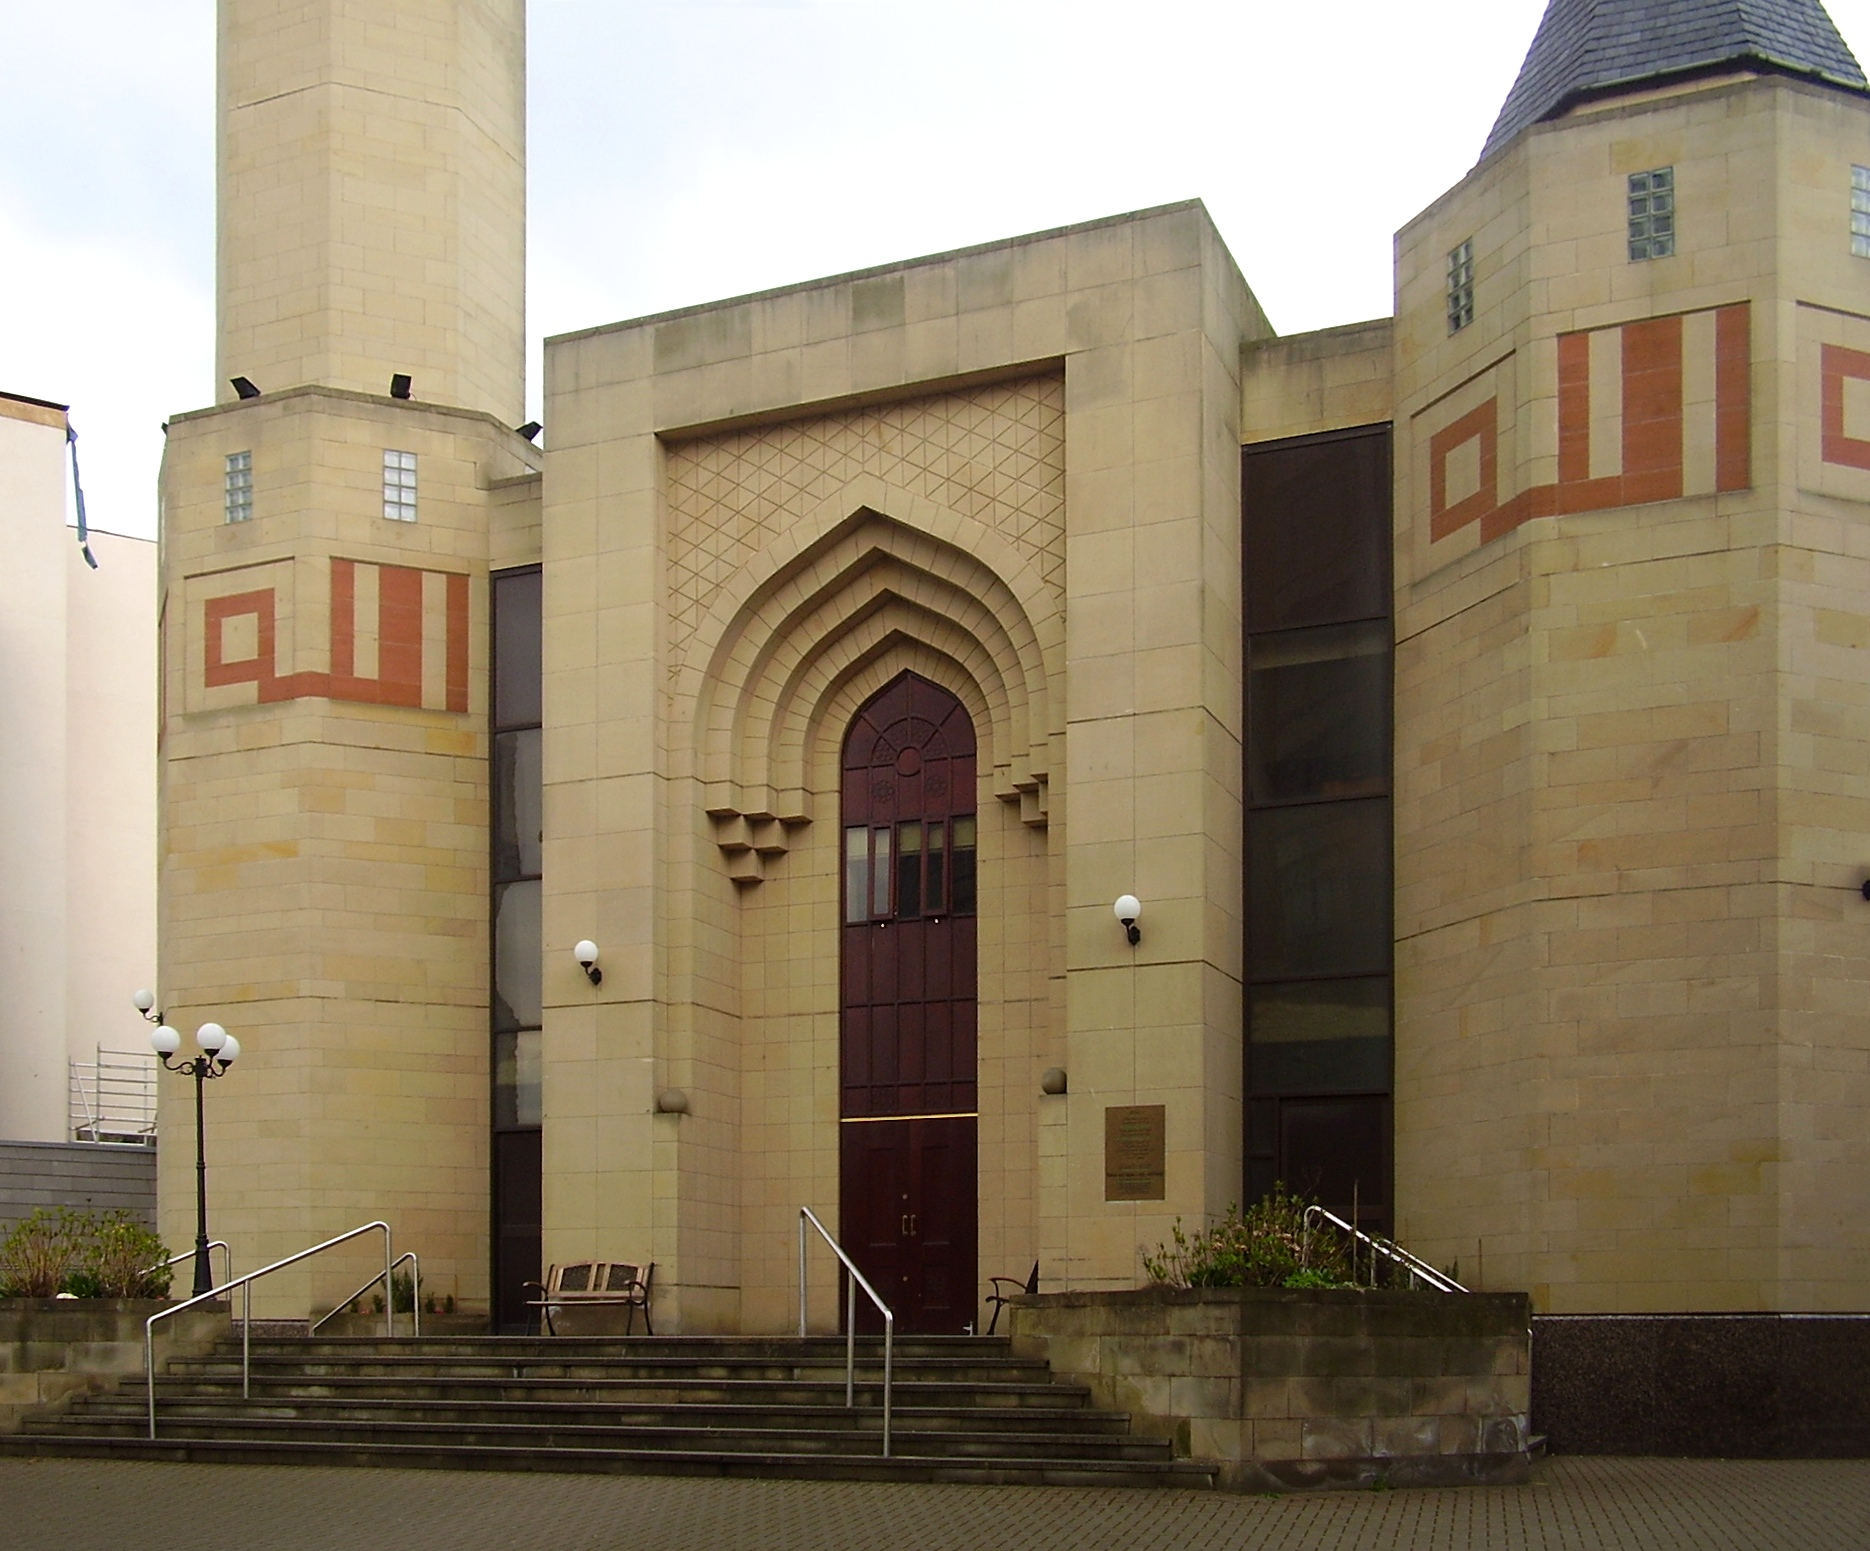 https://i1.wp.com/upload.wikimedia.org/wikipedia/commons/f/f7/Edinburgh_central_mosque_edit.jpg